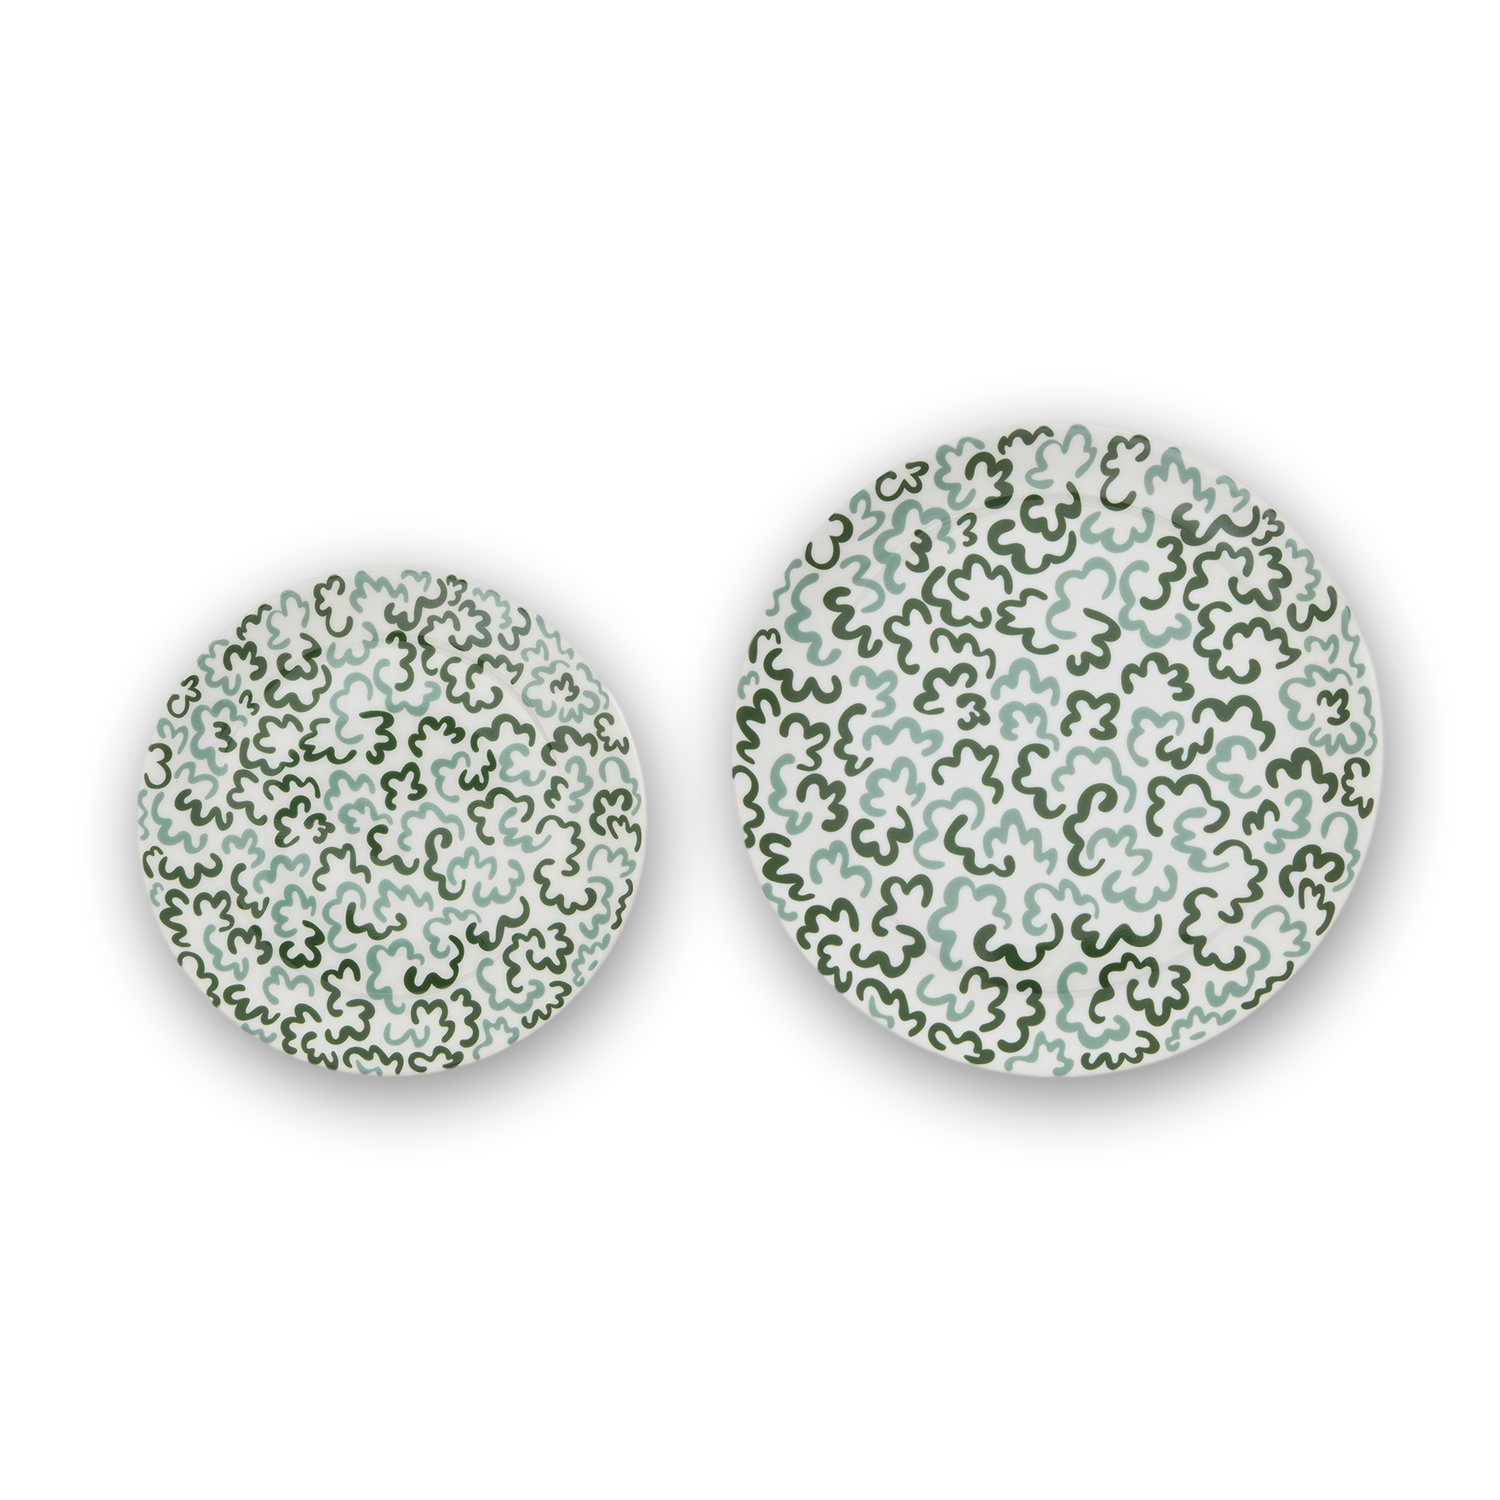 OTTOLINE X HOST CLOUD SIDE PLATE 8""